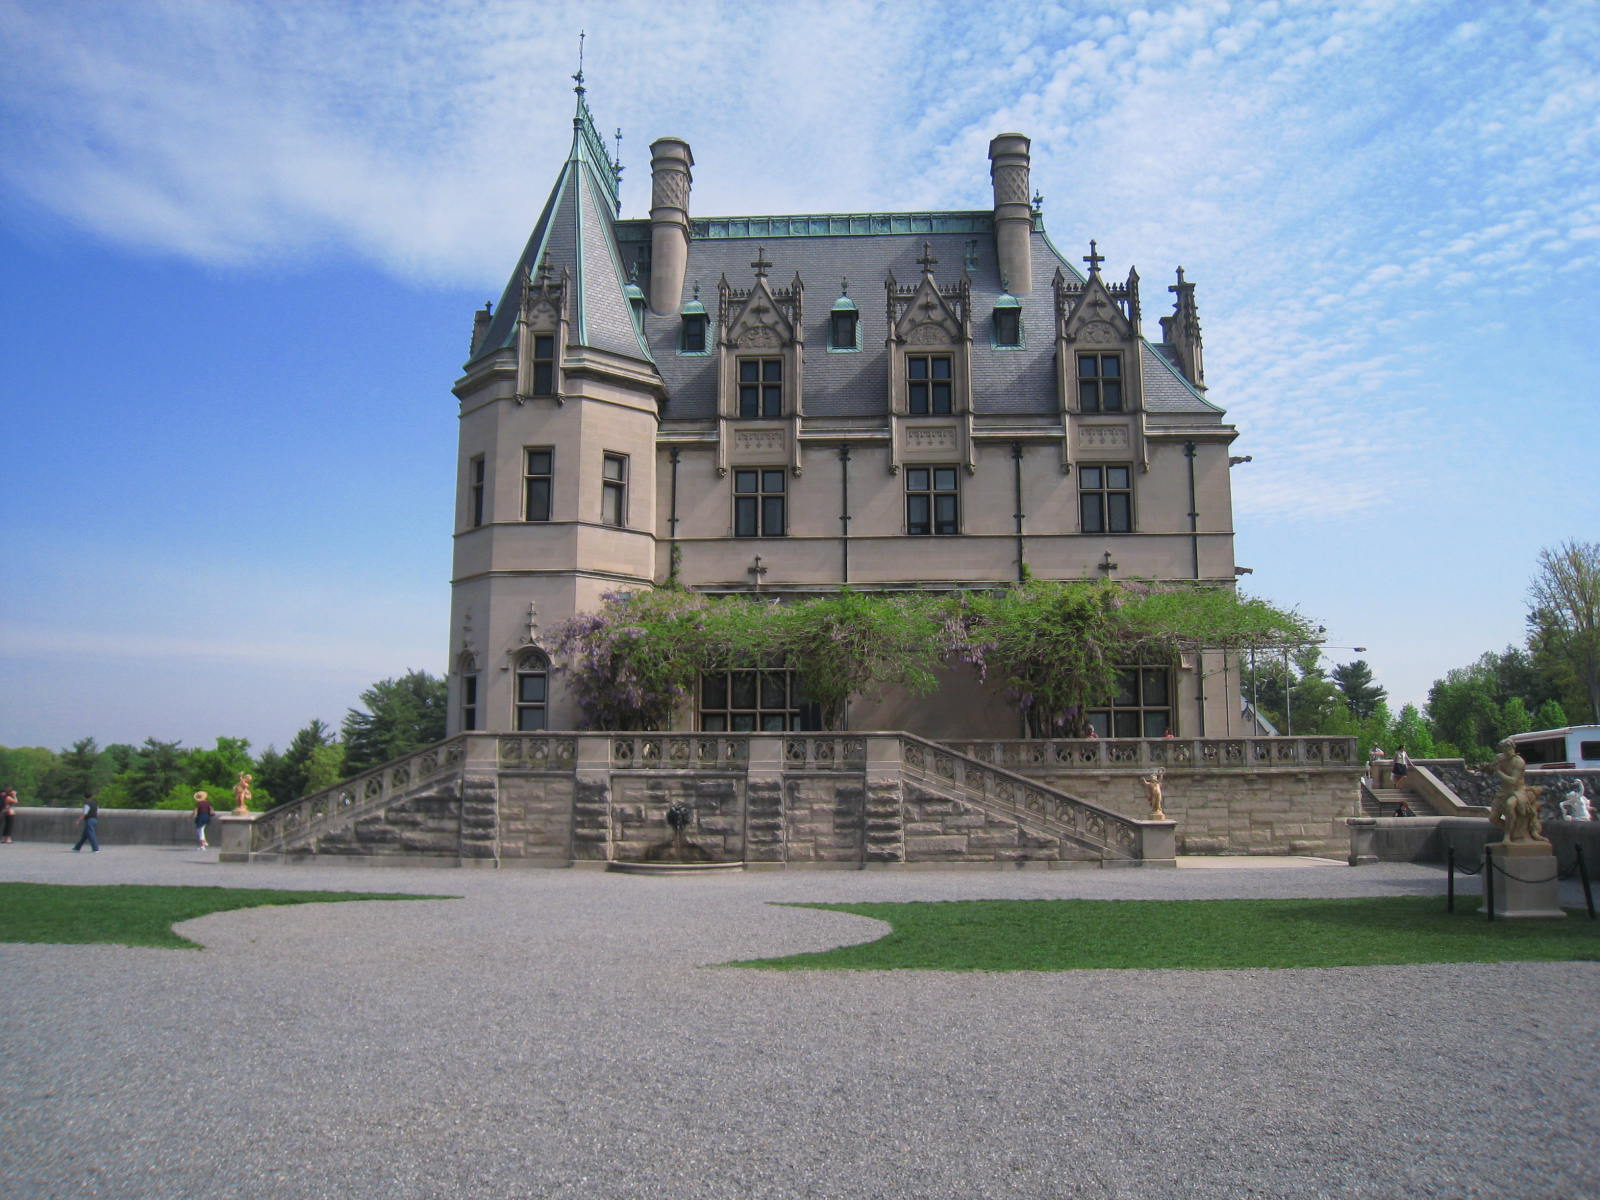 In addition to being the largest house in America, Biltmore House in Asheville, North Carolina is also a treasure trove of priceless works of art, artifacts from around the world and exquisite furnishings.